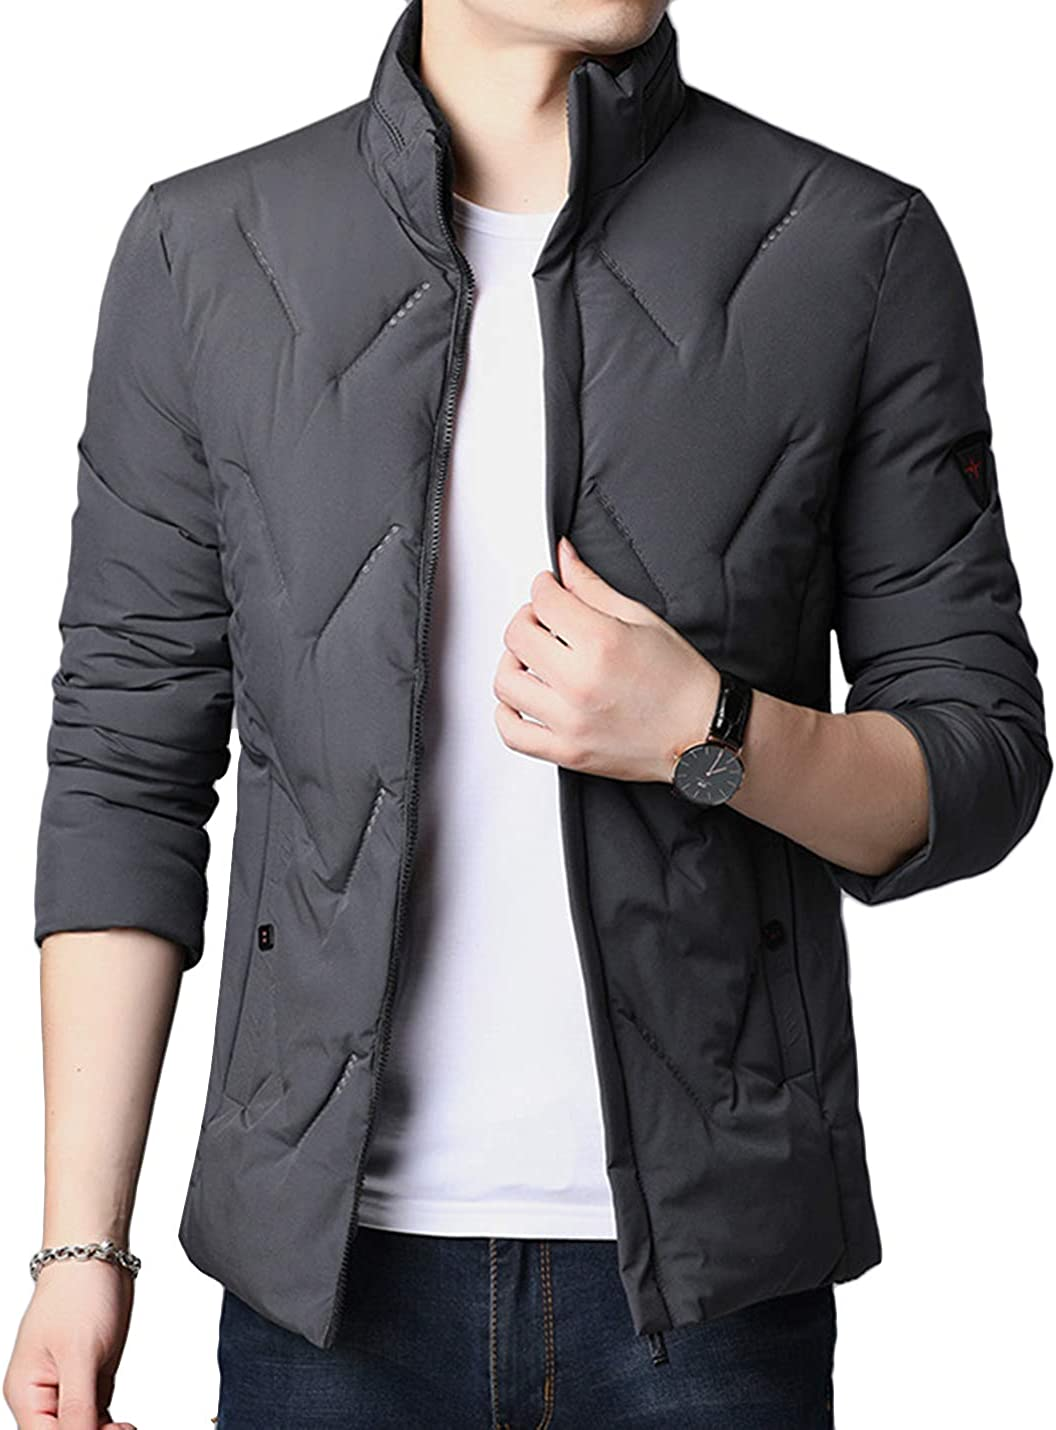 HaoMay Men's Winter Warm Full Zip Cotton-Padded Quilted Outwear Jacket